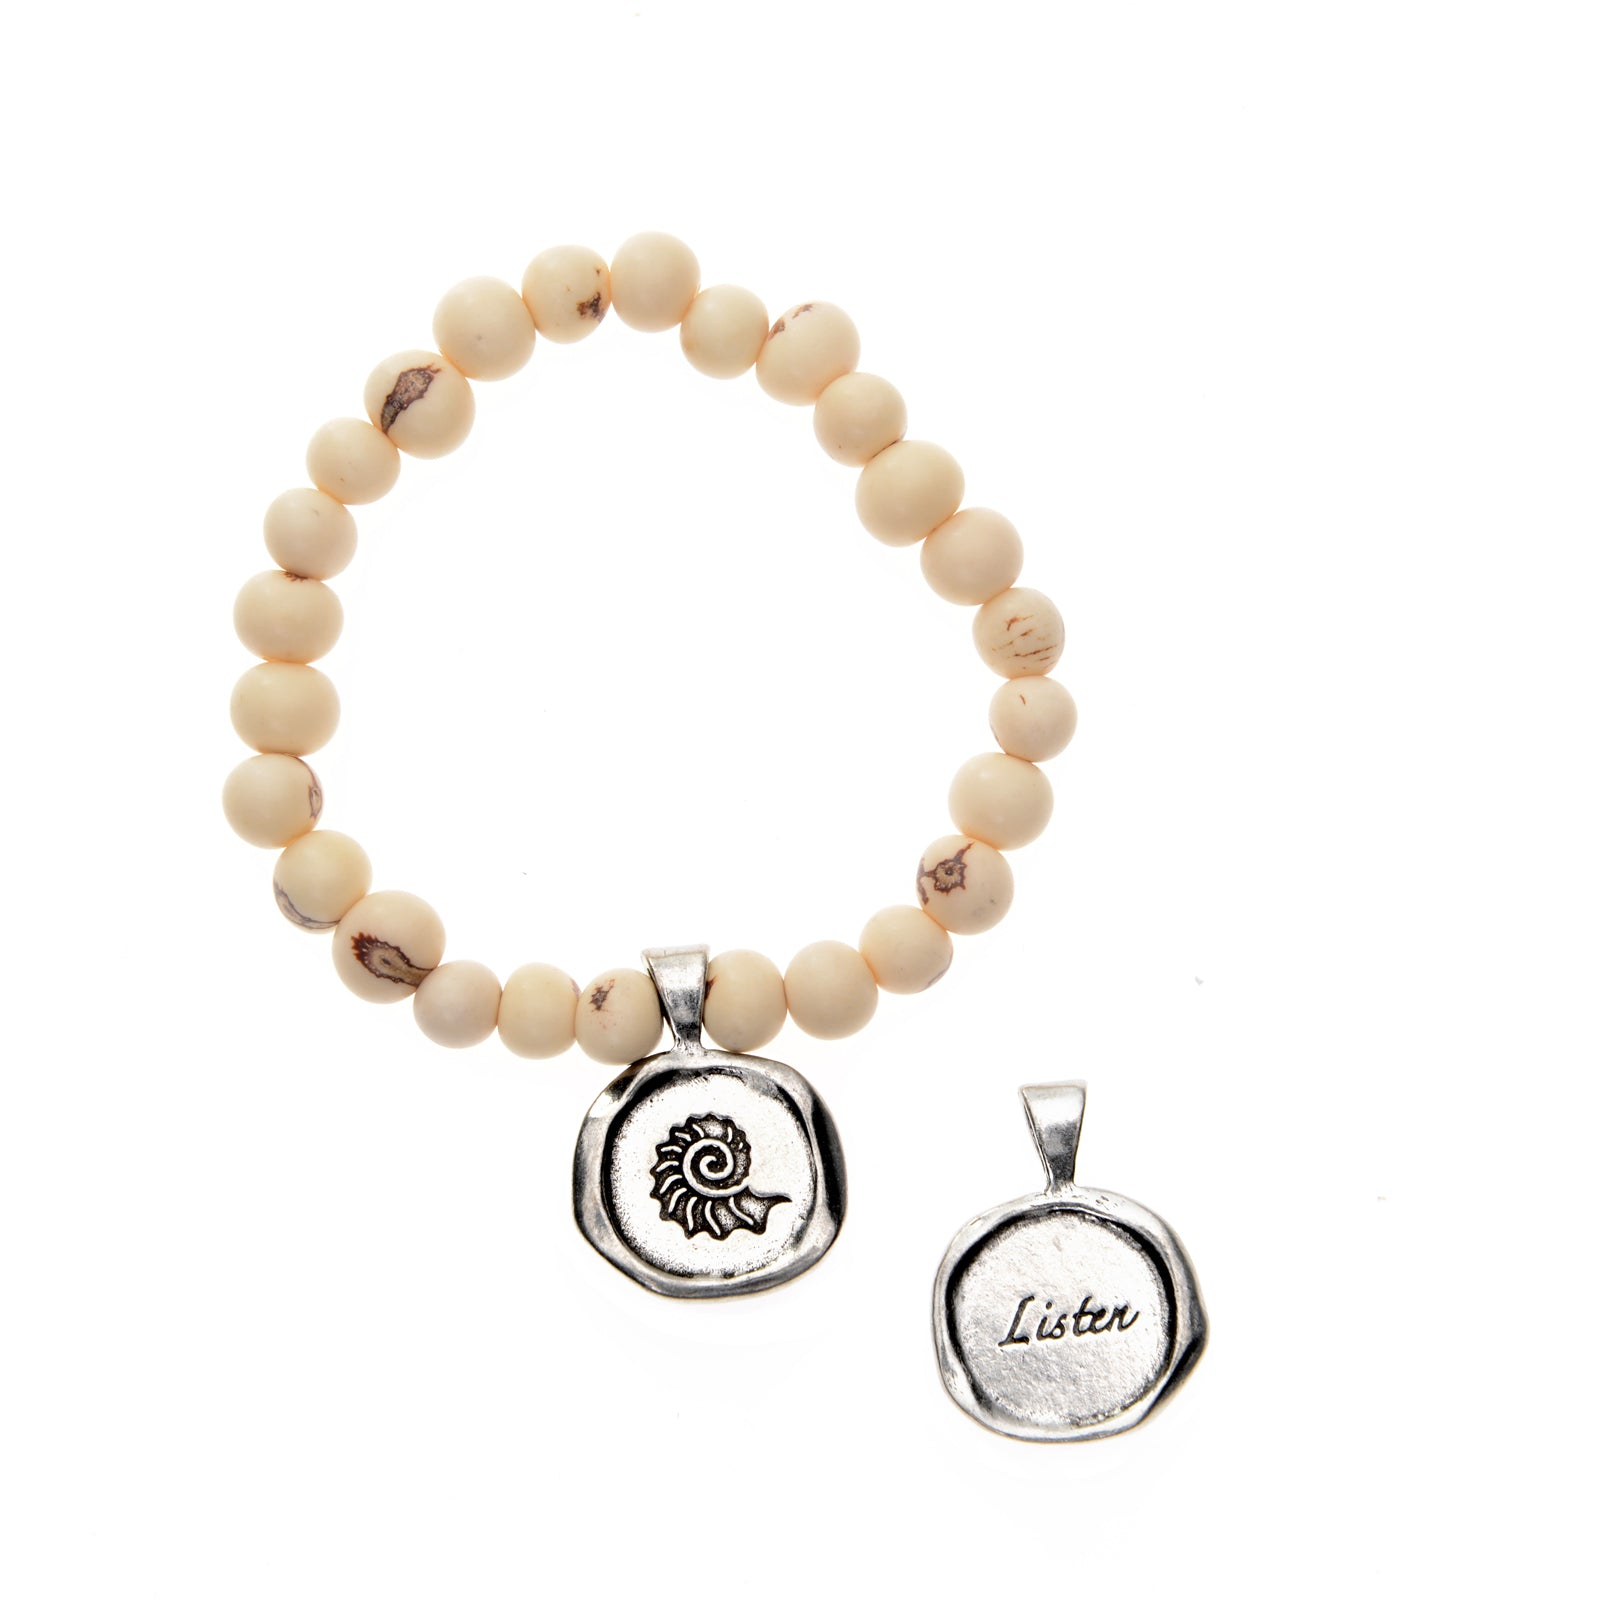 White Acai Seeds of Life Bracelet with Wax Seal